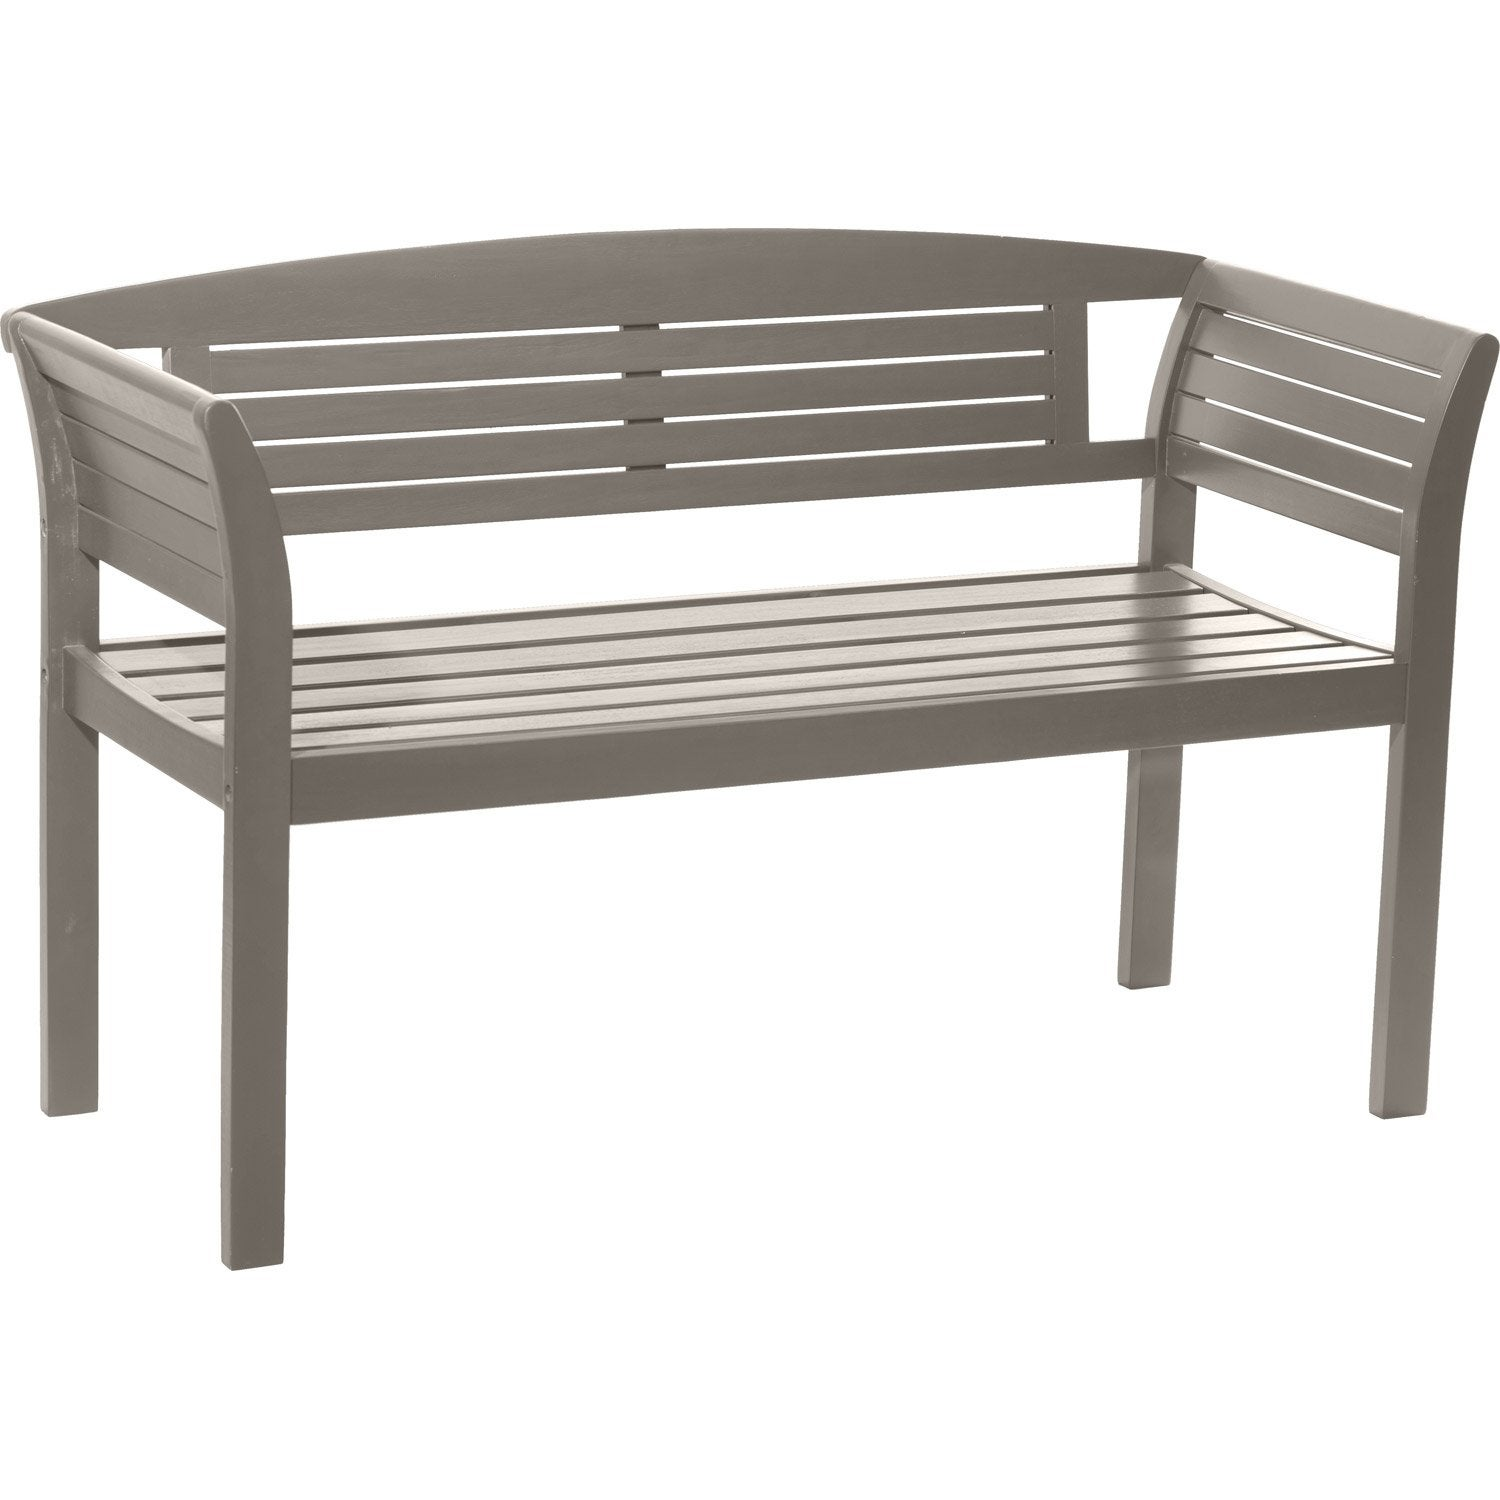 Banc 2 places de jardin en bois new york r glisse leroy merlin for Banc de jardin original